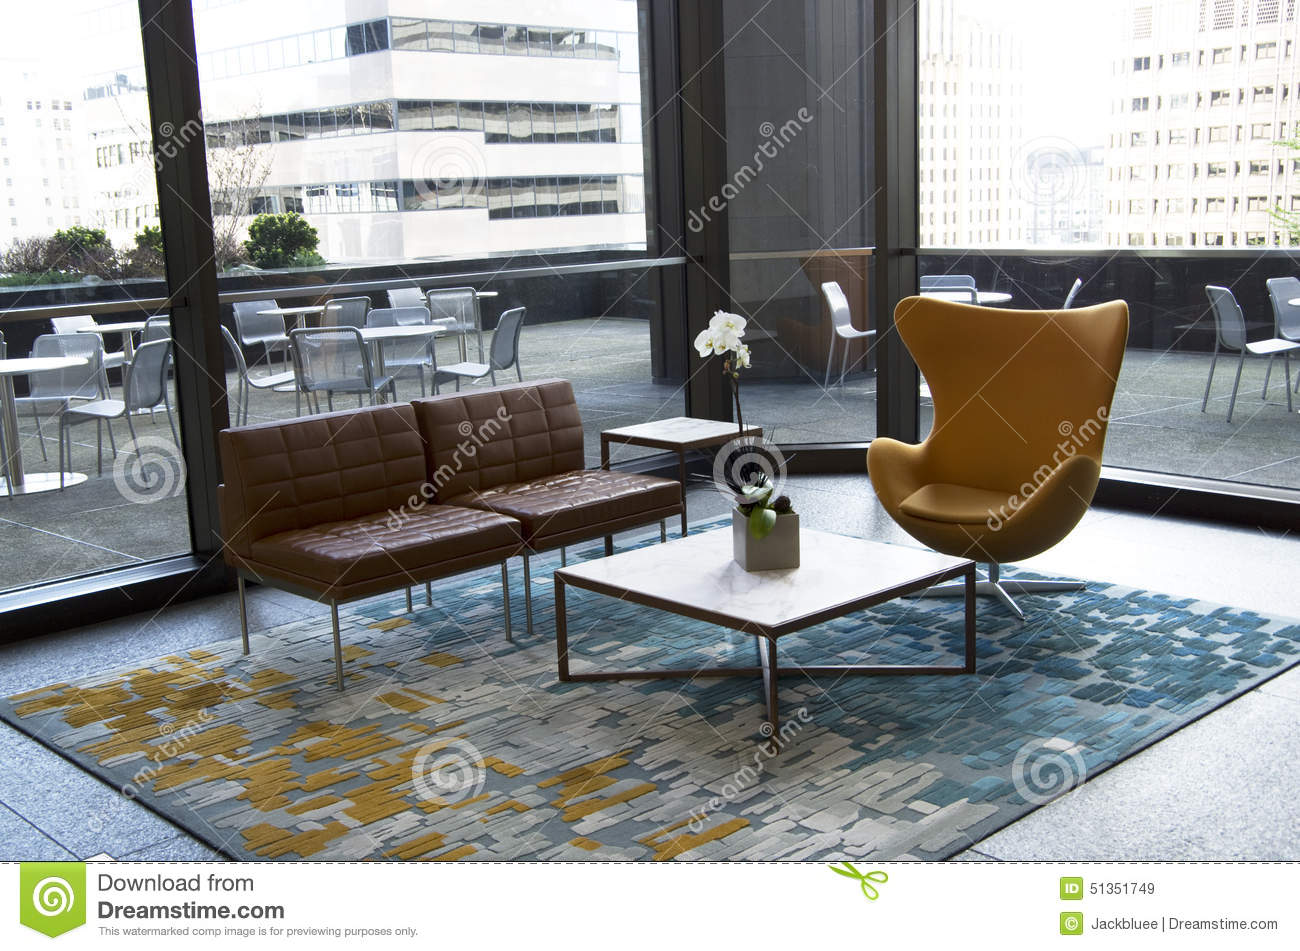 Modern Office Lobby Furniture modern office building lobby furniture stock photo - image: 51351749